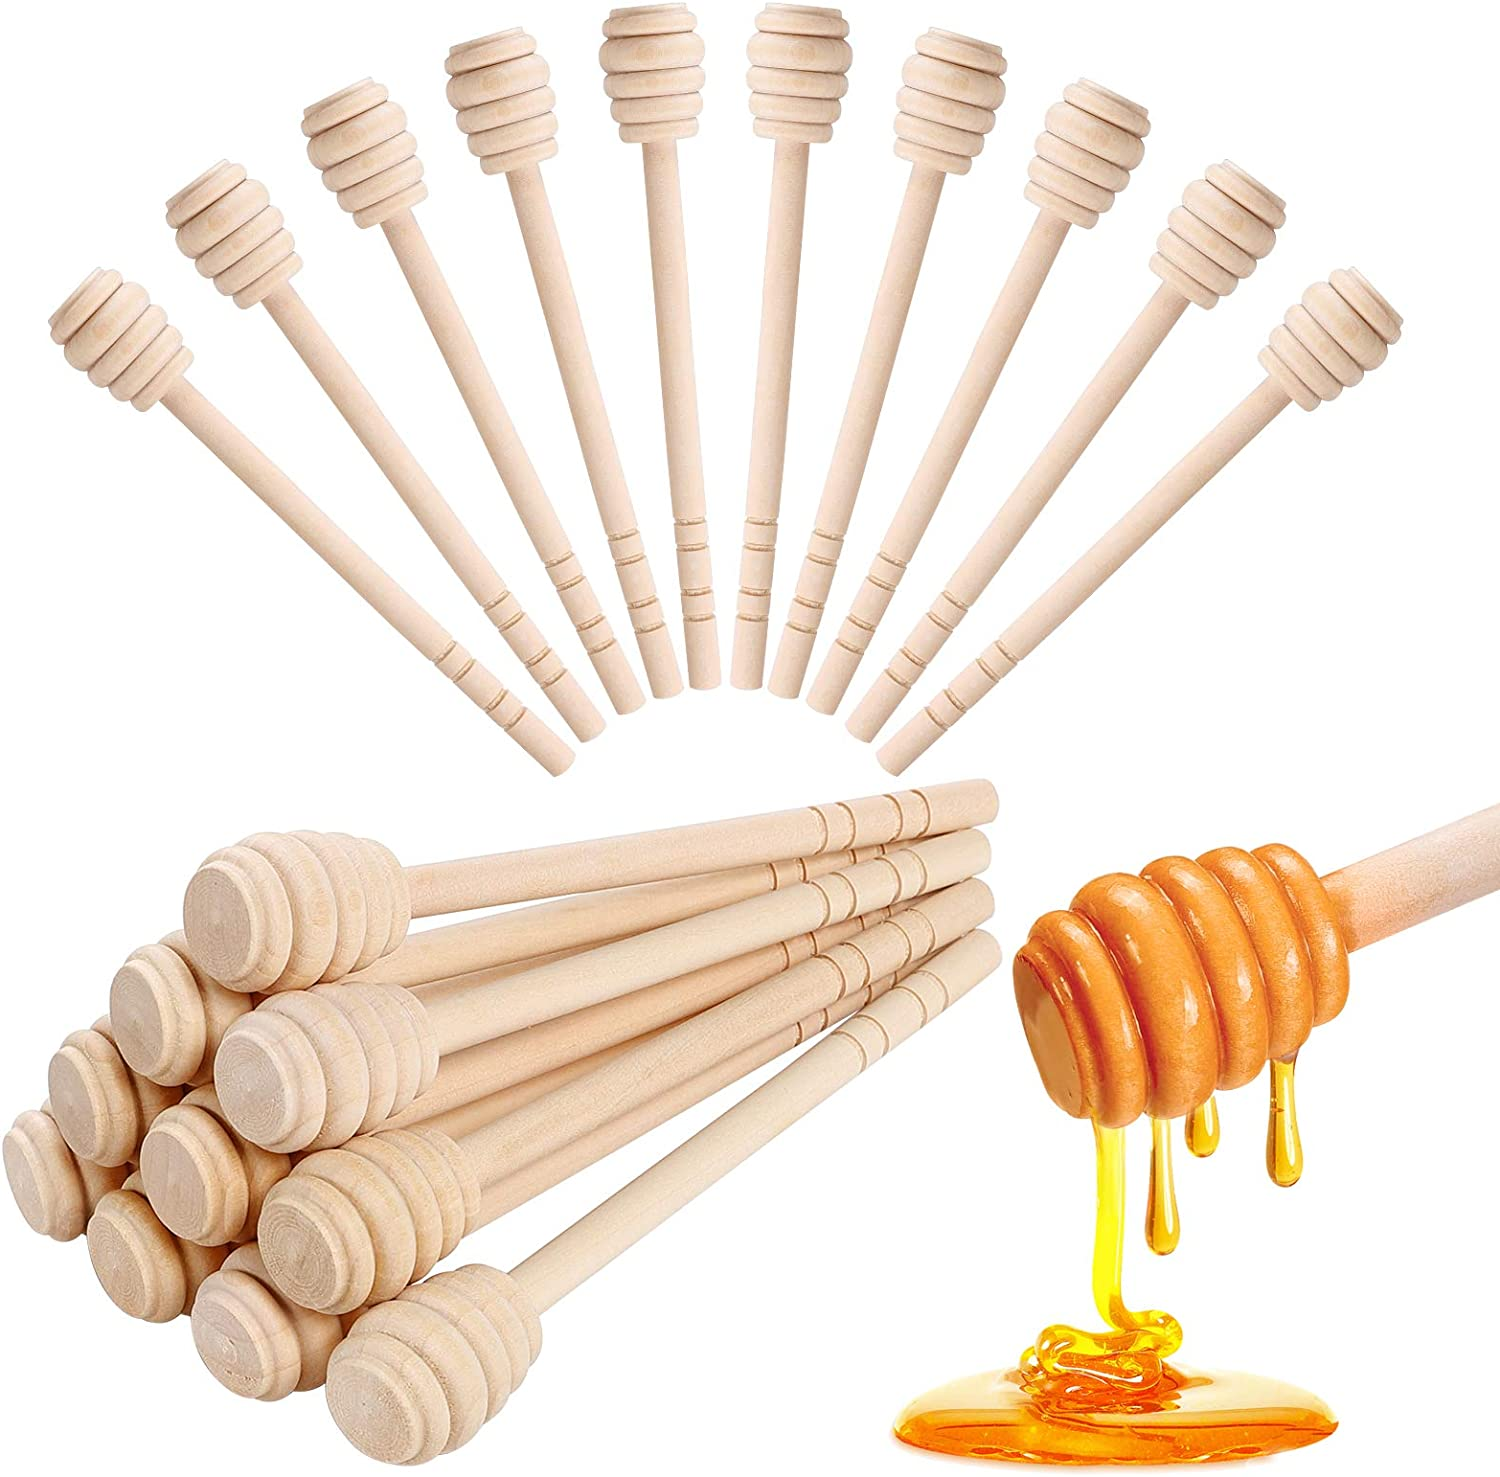 Quantity Options Honey Stick Order 1 to 5 Natural and Unfinished Wooden 6 Honey Dippers made from Solid Hardwood Wedding Favors